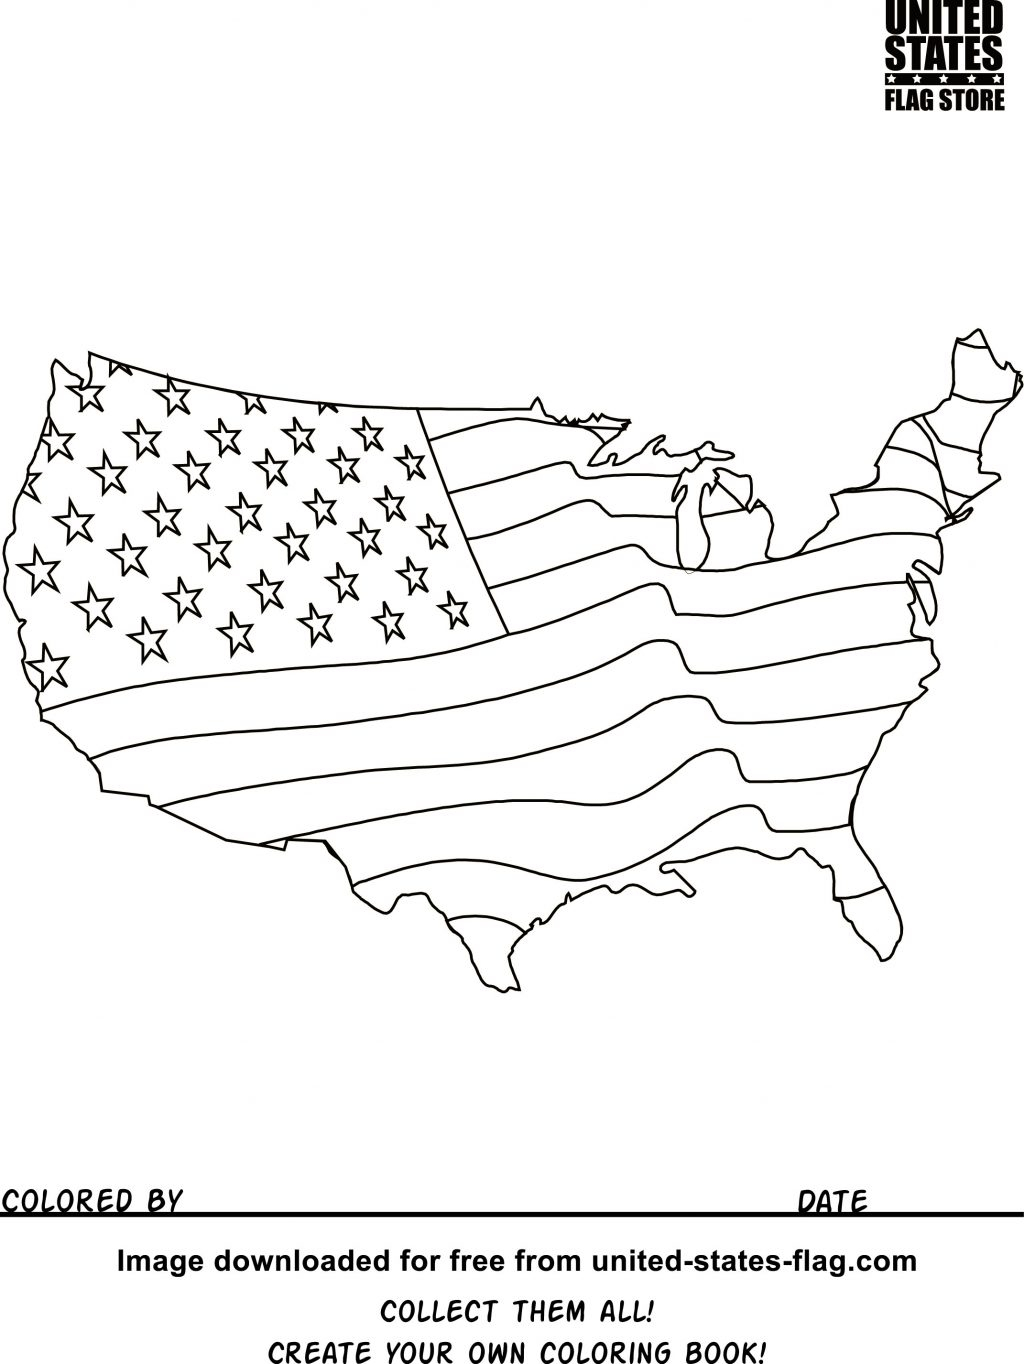 The American Flag Coloring Page Coloring Ideas Free American Flag Coloring Pages Veterans Day